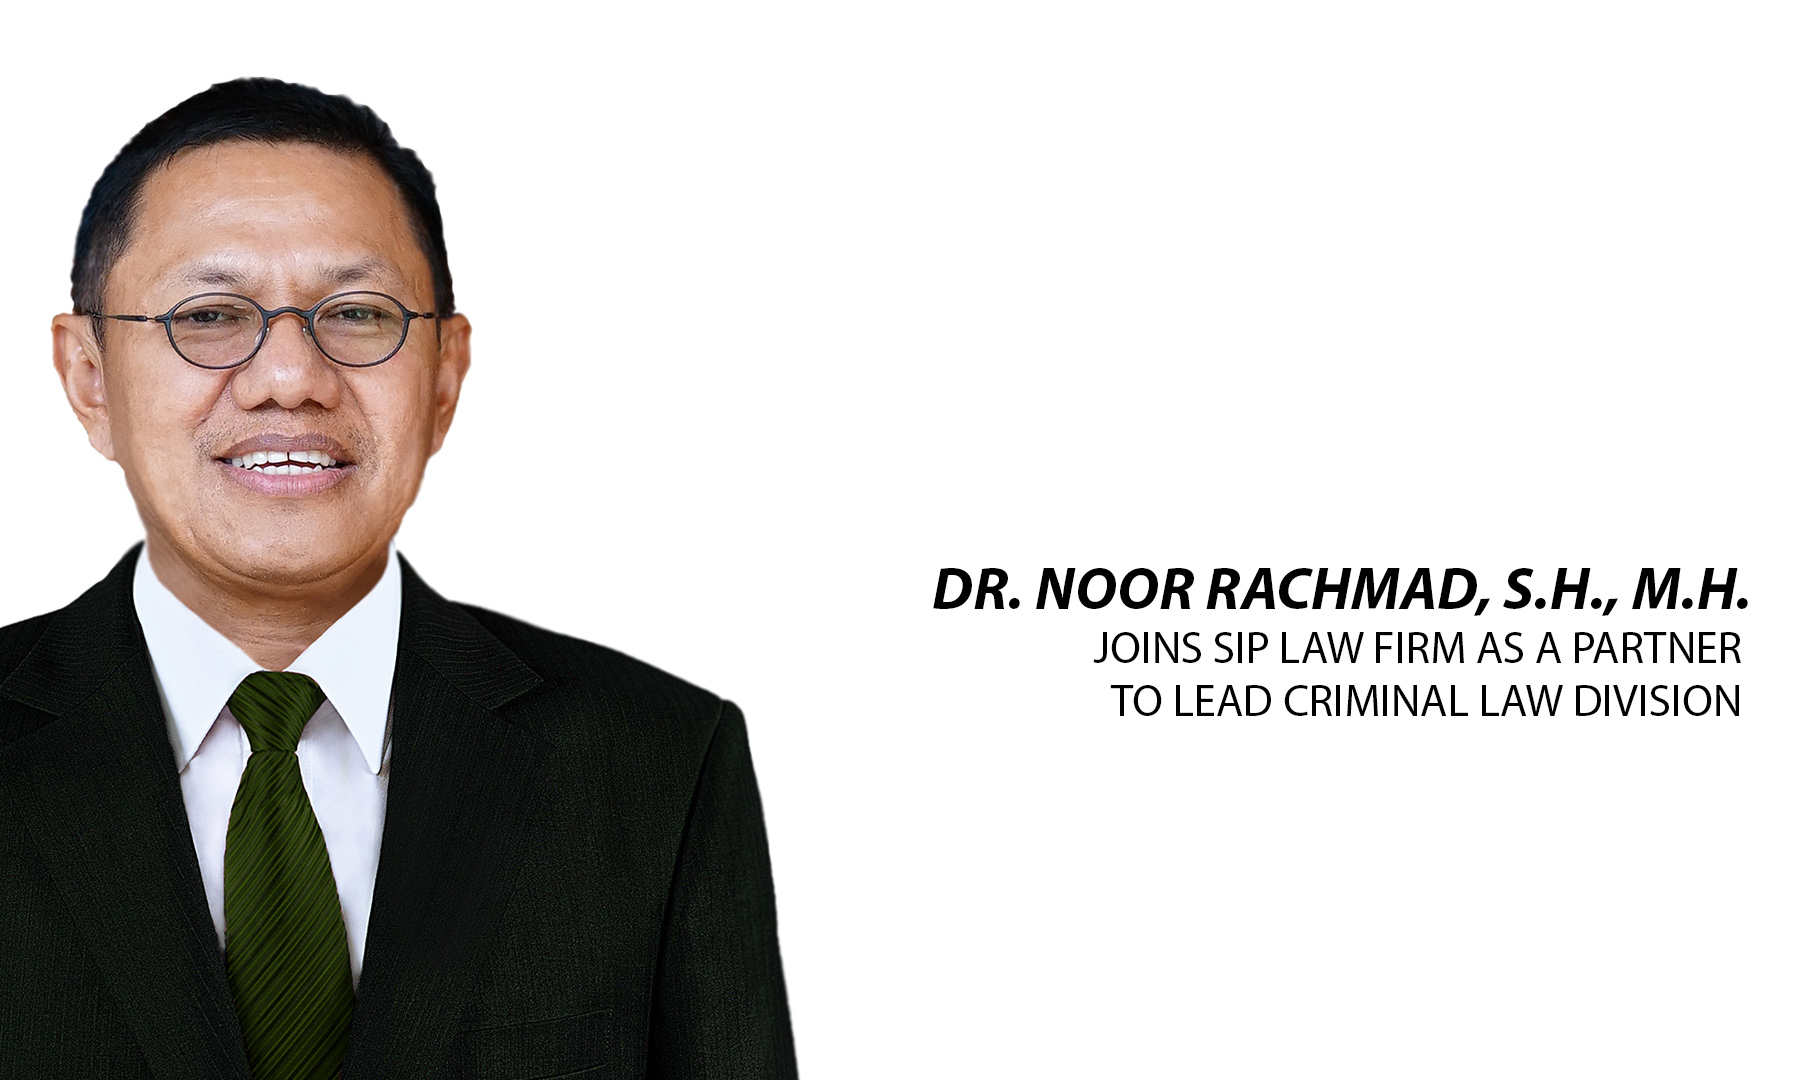 Dr. Noor Rachmad, S.H., M.H. Joins SIP Law Firm as a Partner